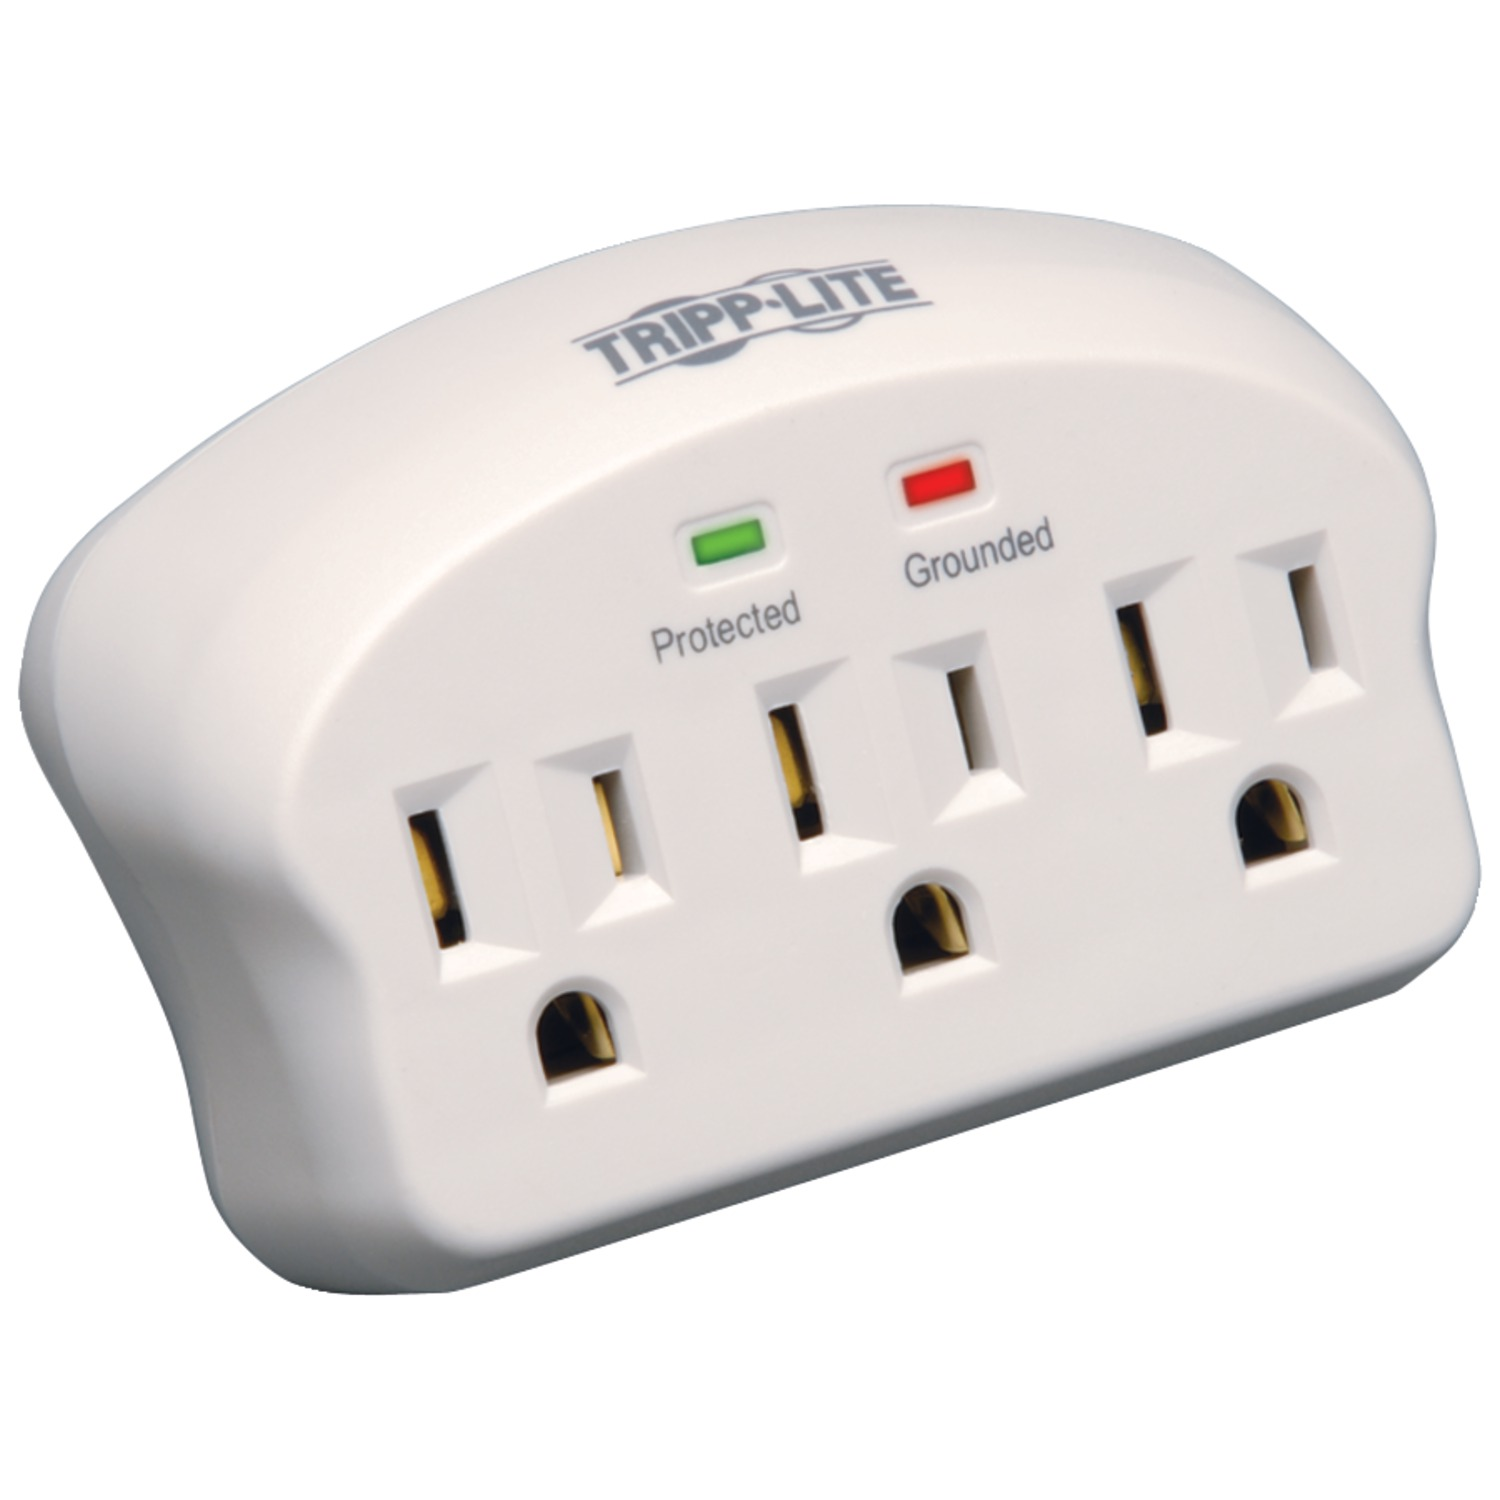 Tripp Lite SK3-0 3-Outlet Surge Protector